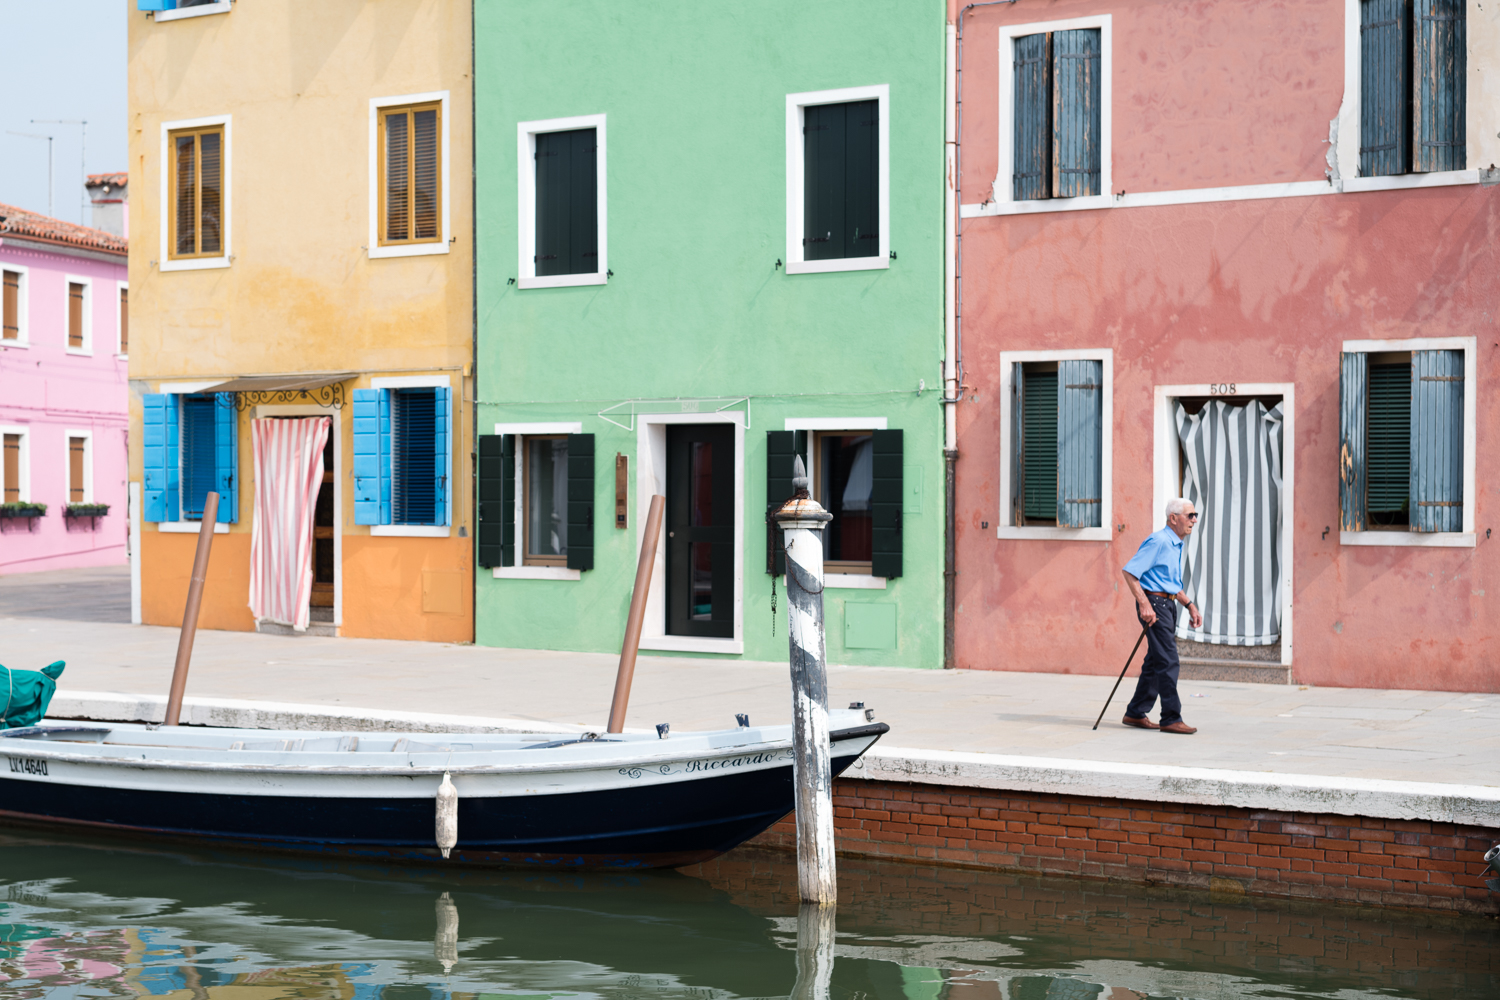 Burano color palette + wandering man     Leica M10 1/1000s F2 ISO100